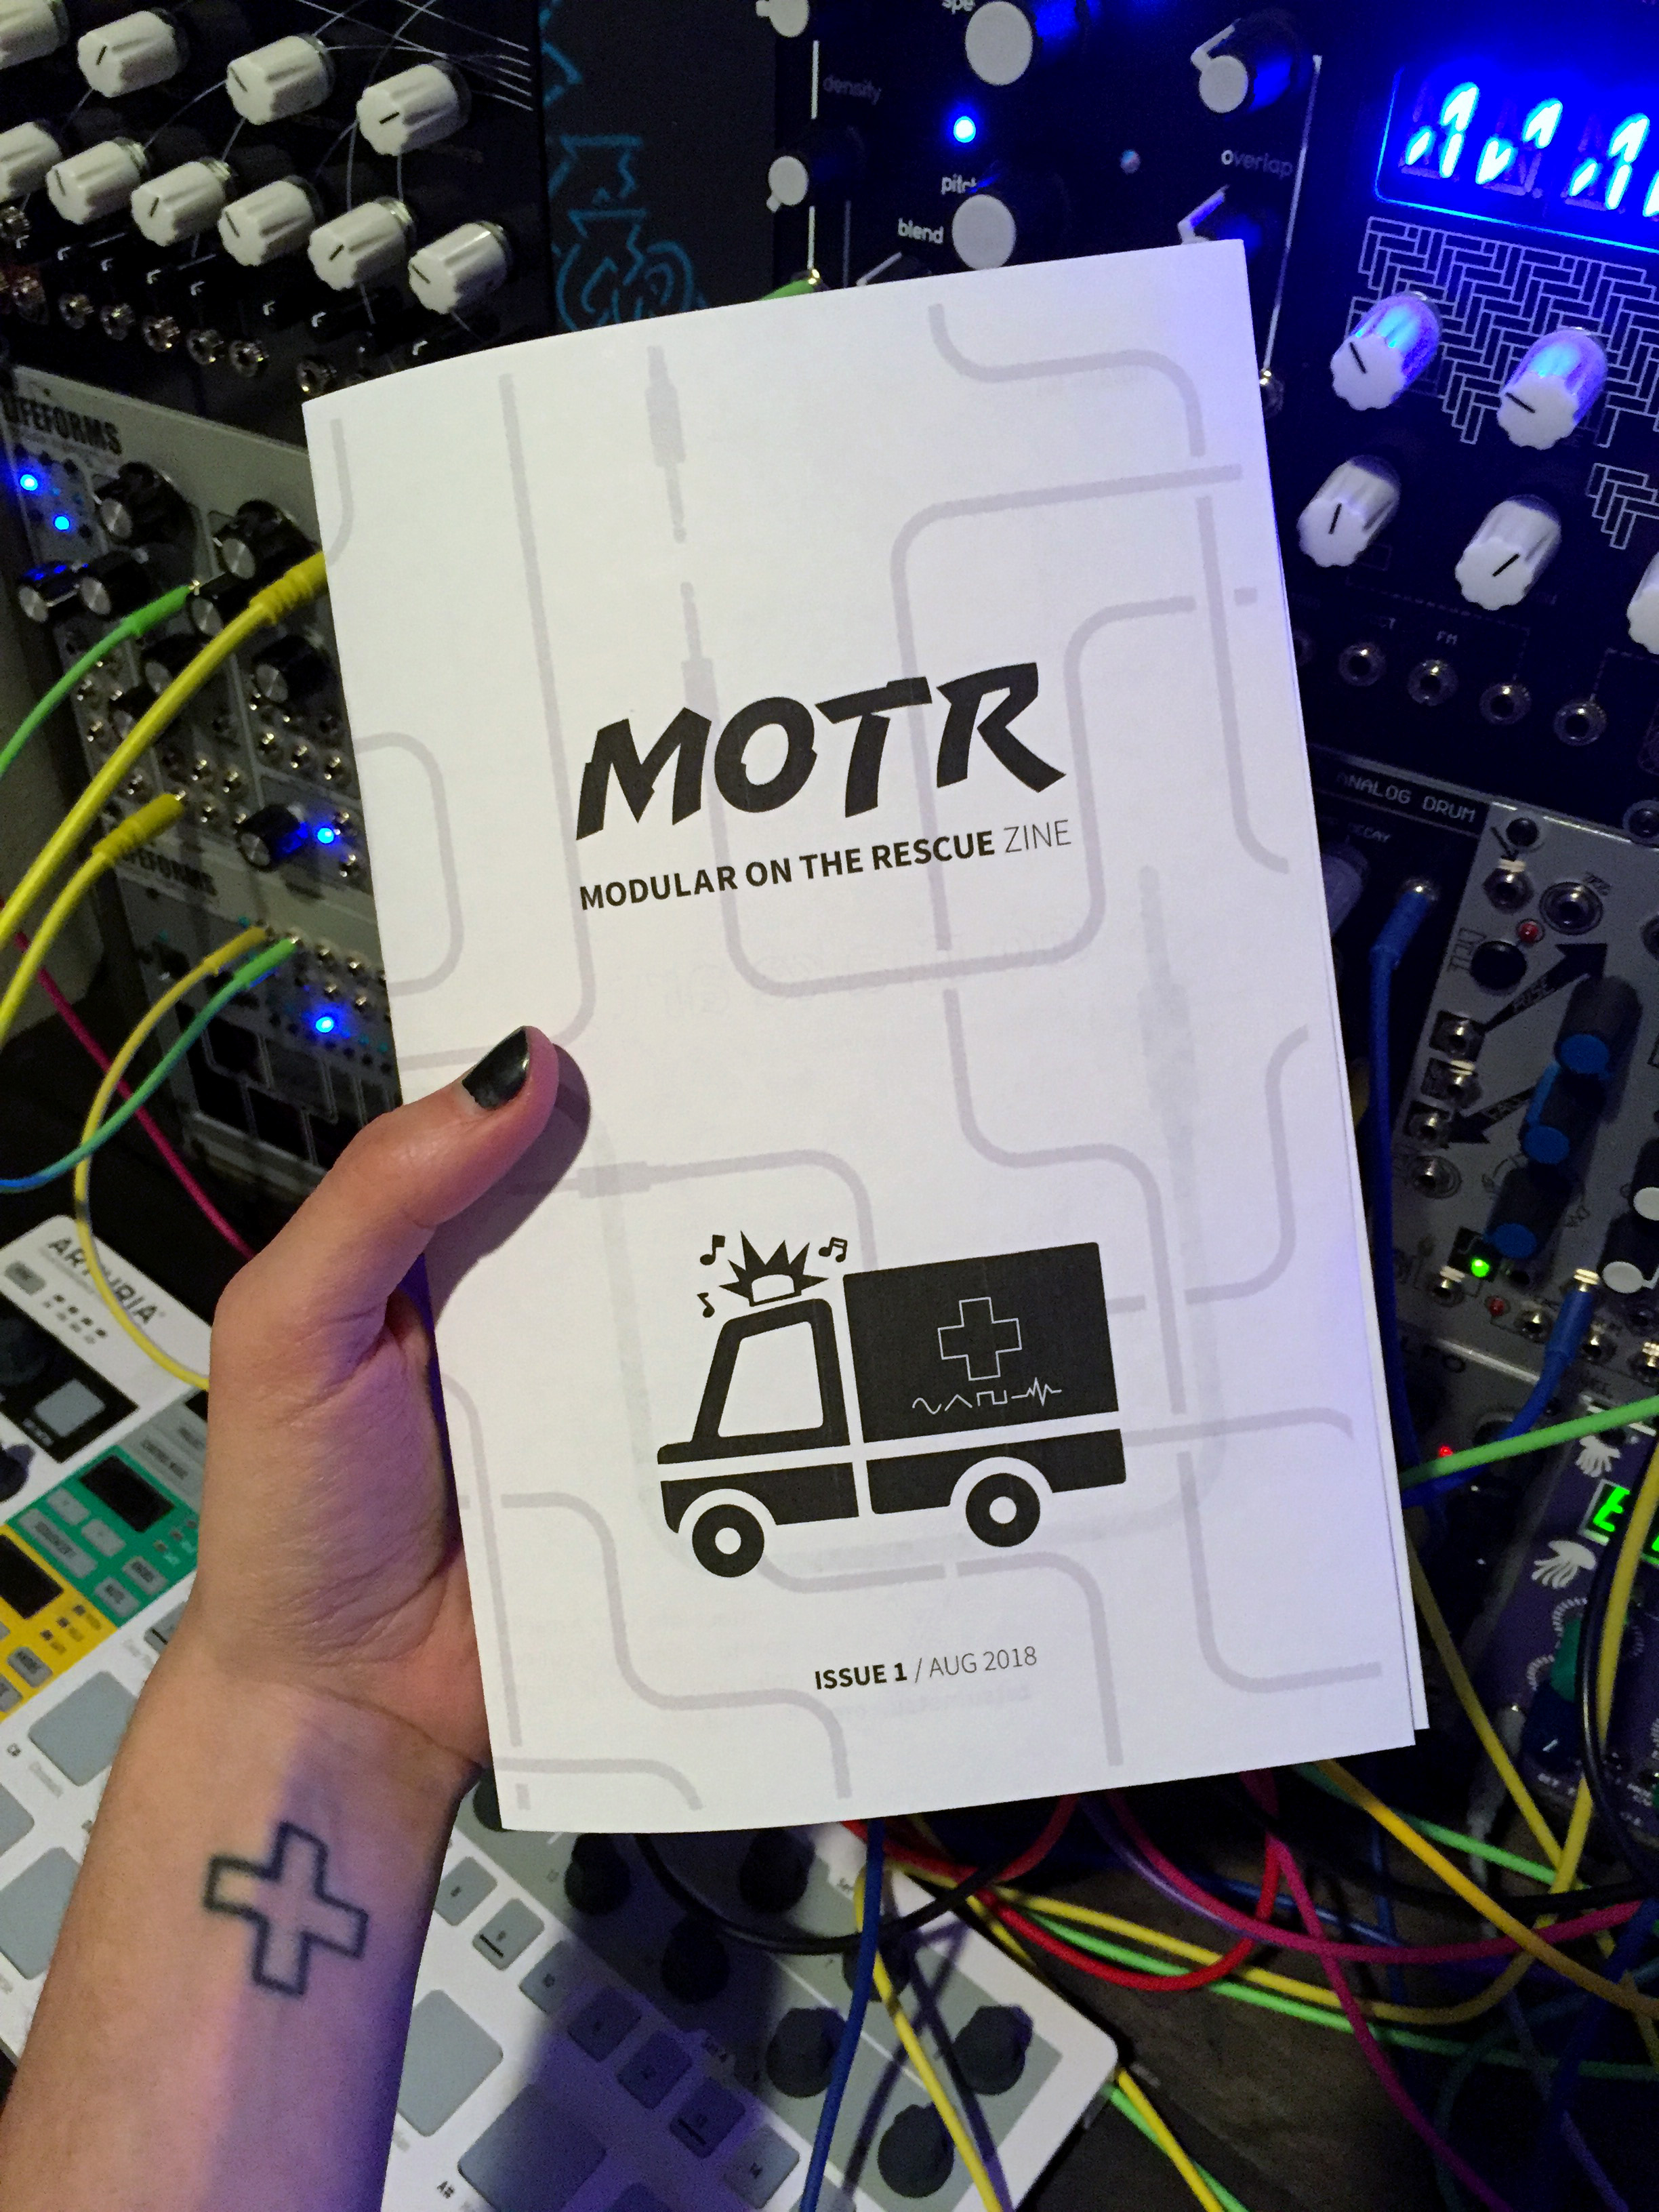 Sign up for our e-newsletter to receive the MOTR zine. -